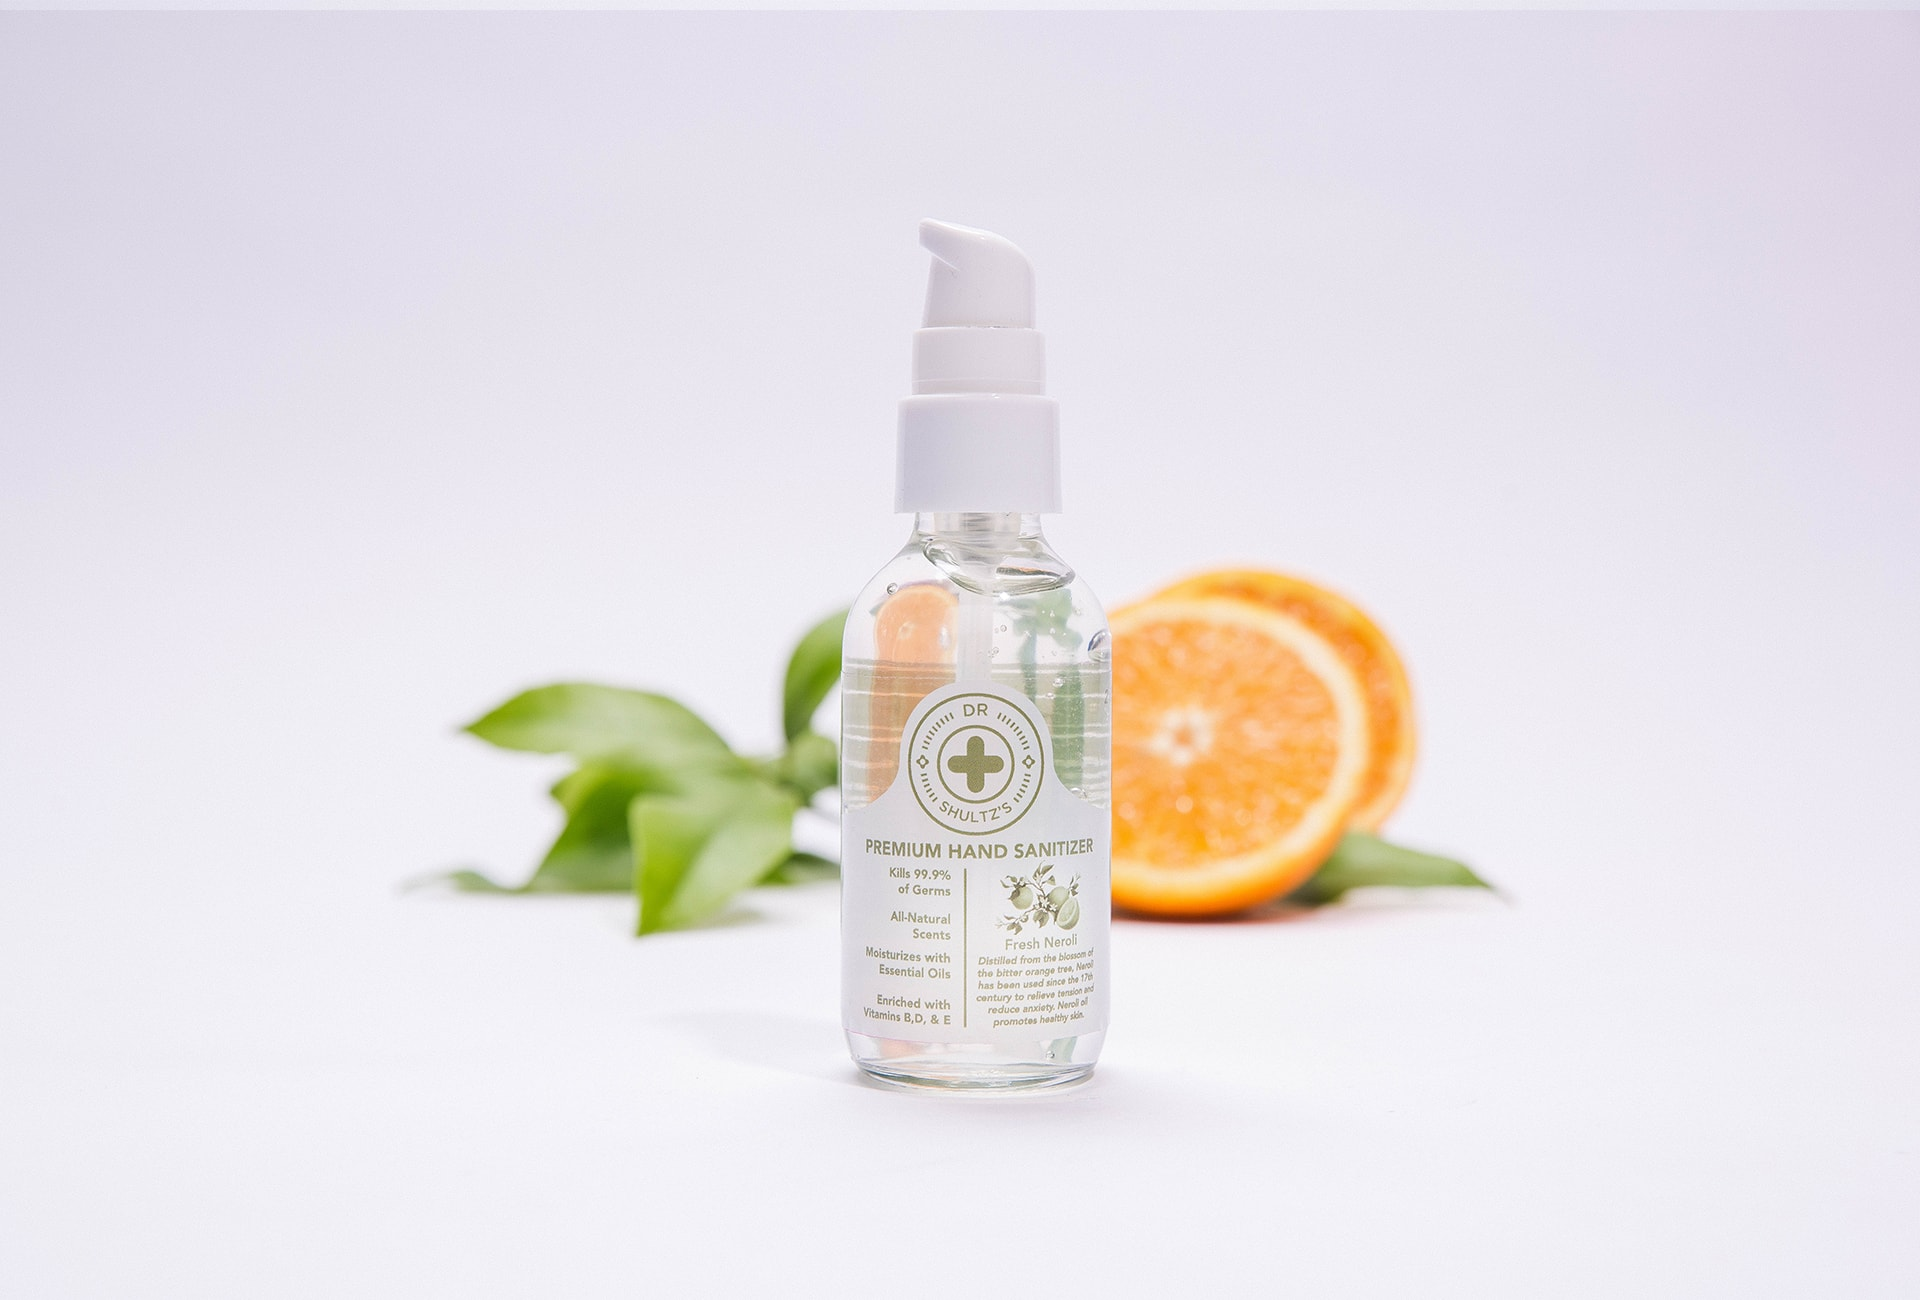 Studio Photo Shultz Hand Sanitizer Next To Moisturizing Neroli Essential Oil